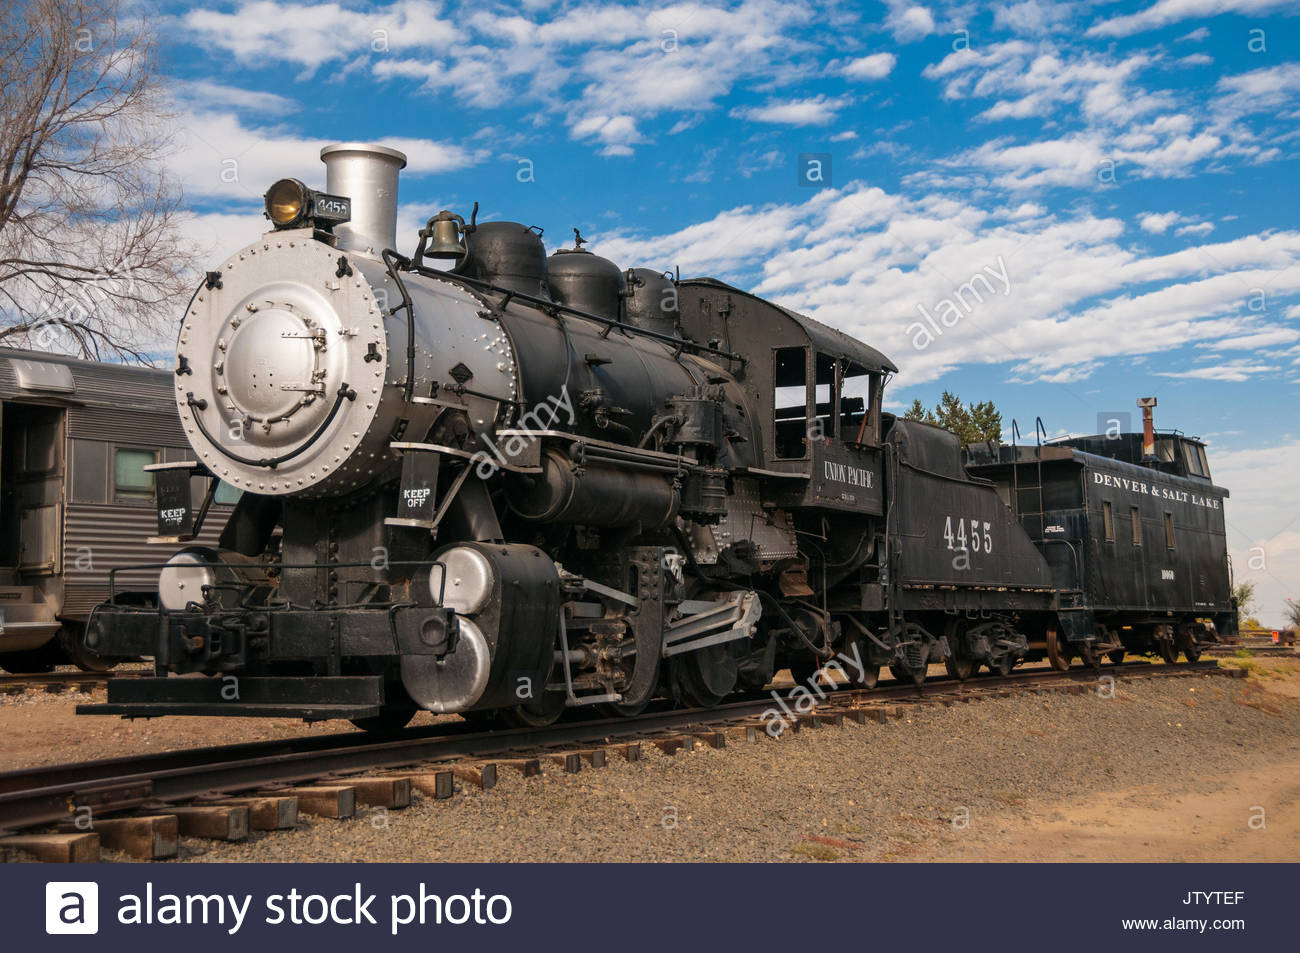 A Union Pacific 0-6-0 switch engine formerly used at Denver's Union Station and later on the Monolith Portland Cement Company operated Laramie Valley  - Stock Image